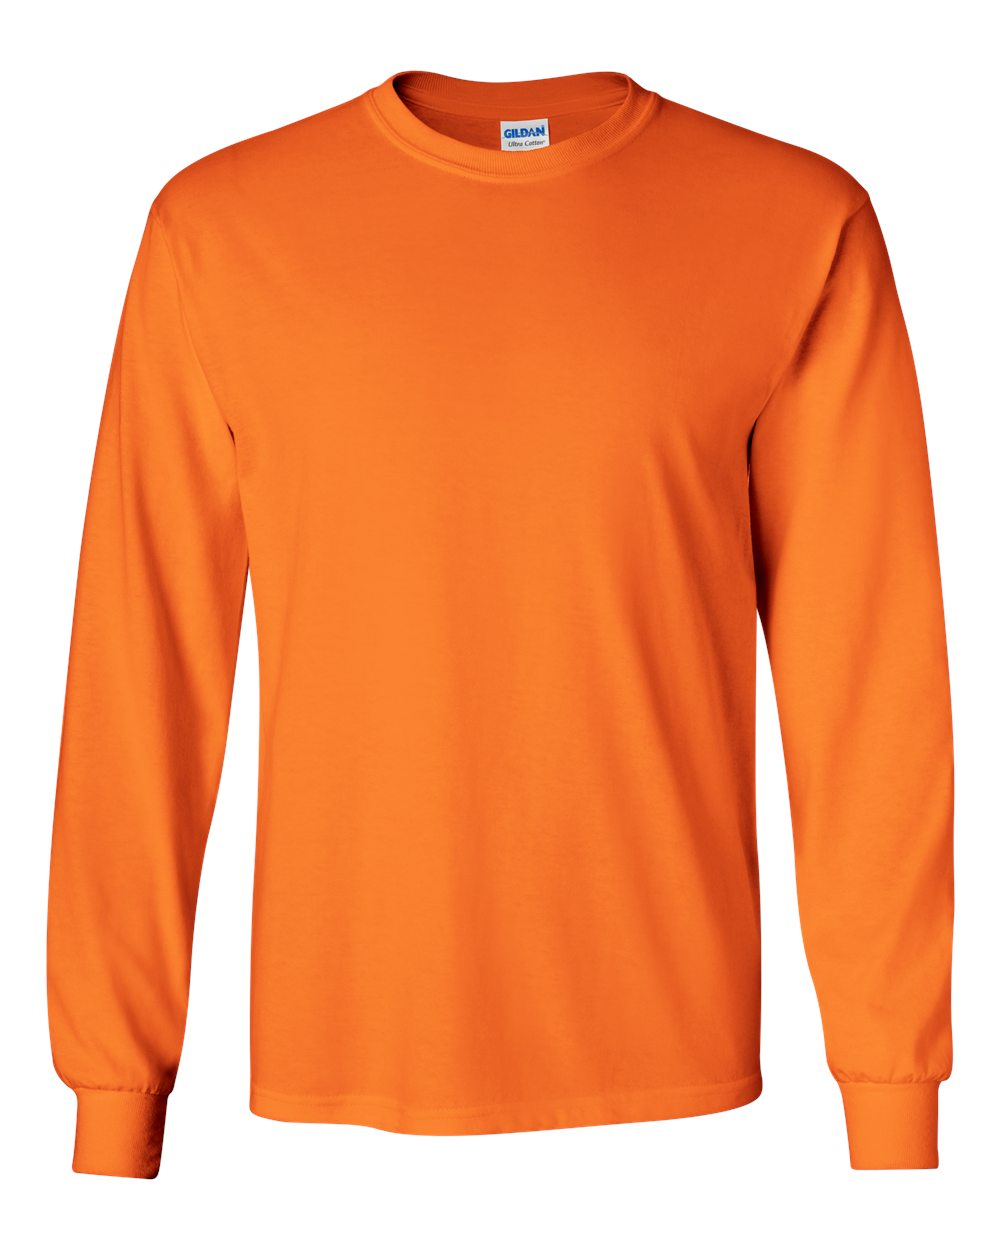 Gildan_2400_S._Orange_Front_High.jpg